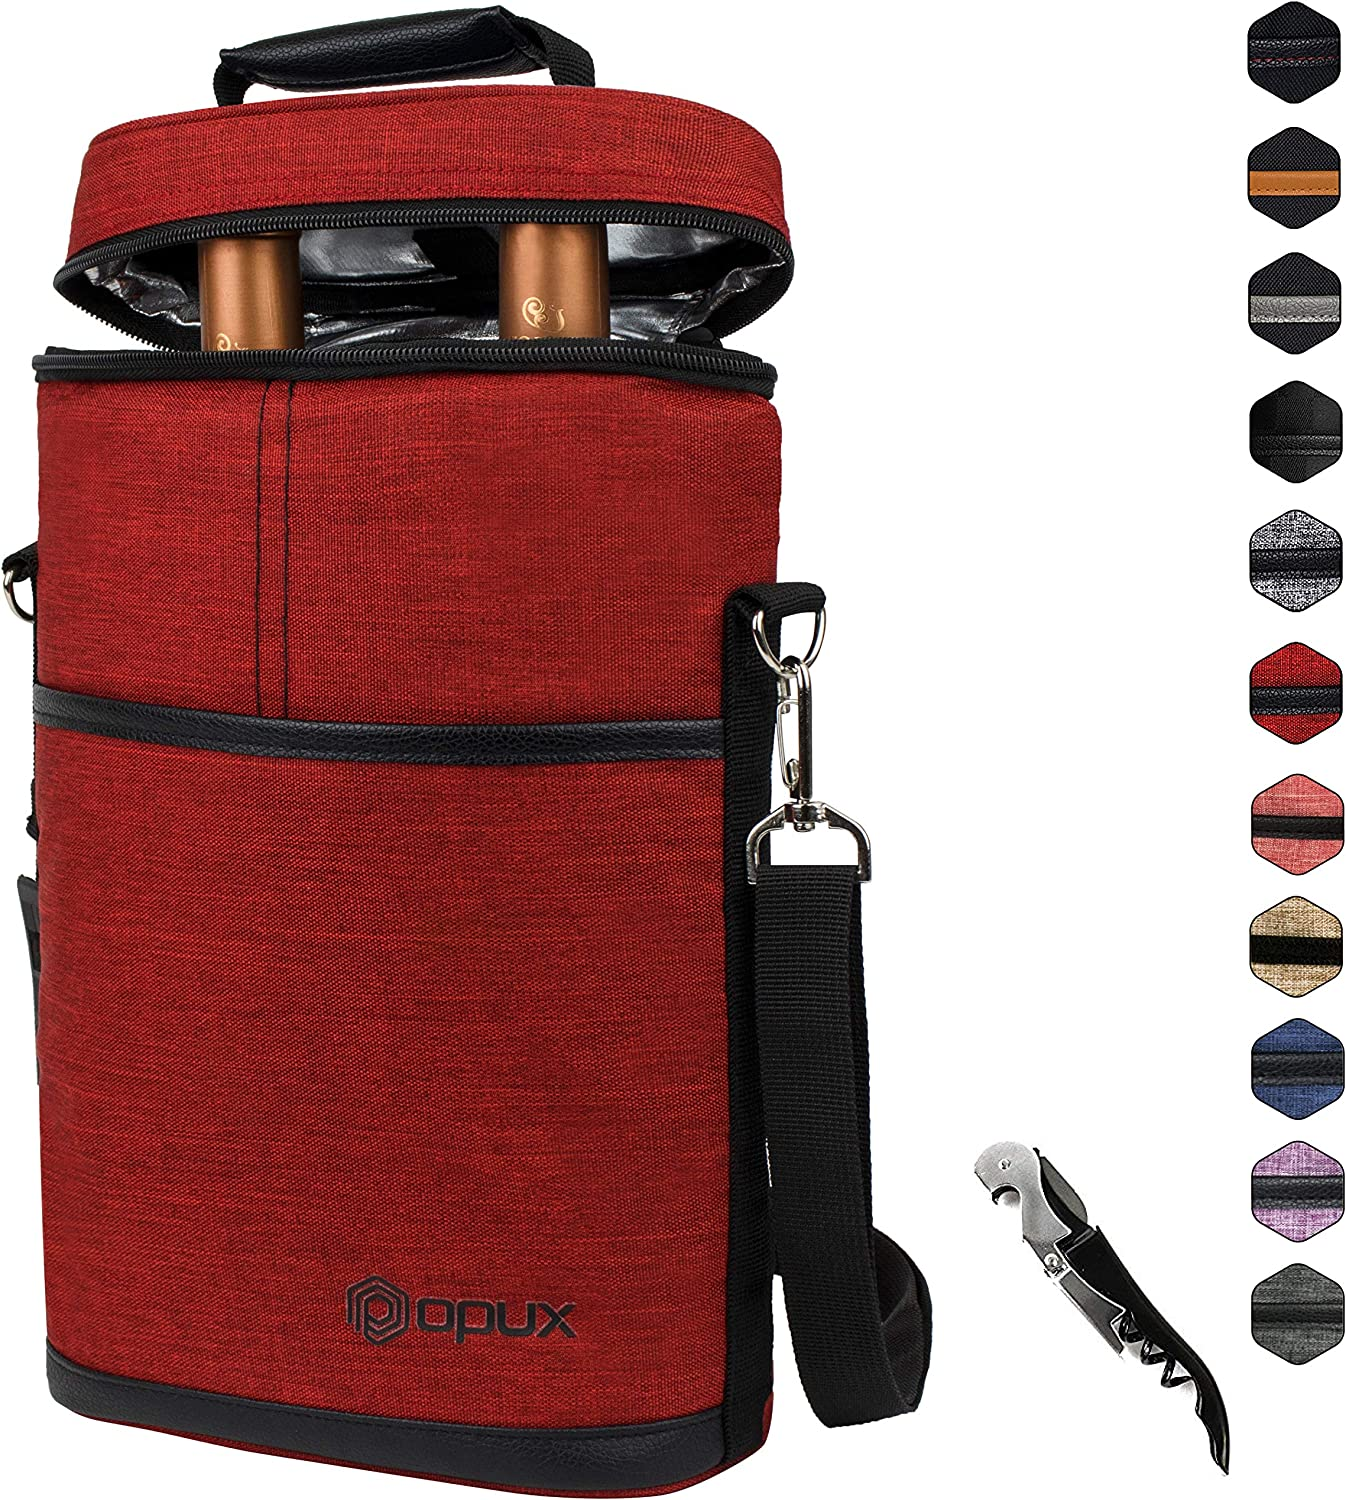 Insulated 2 Bottle Wine Carrier | Wine Tote Bag with Shoulder Strap, Padded Protection, Corkscrew Opener | Portable Wine Cooler Carrying Bag for Travel Picnic - Dark Red